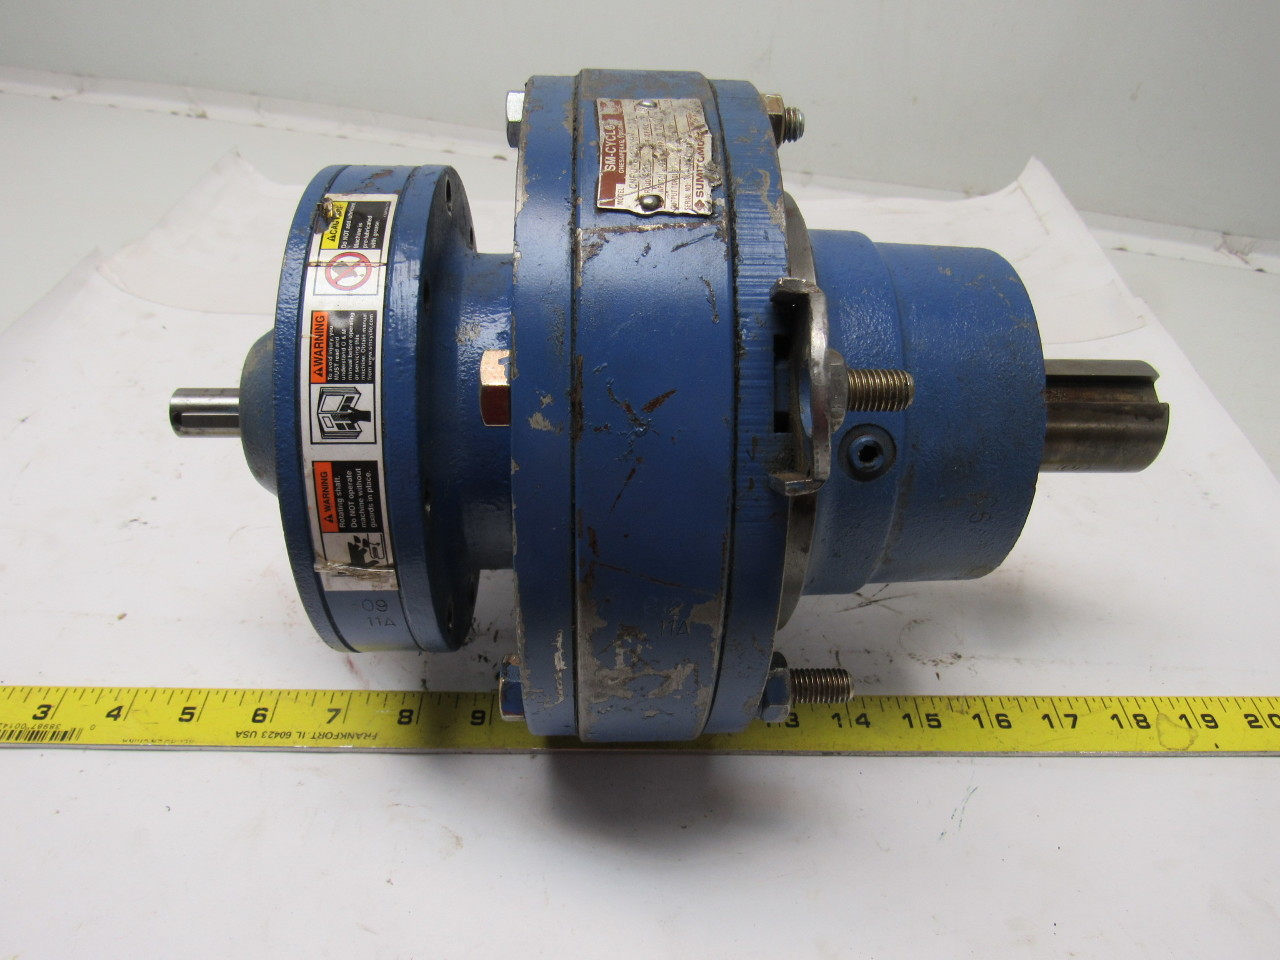 Sumitomo SM-Cyclo CNFJ-6123DBY-121 Inline Gear Reducer 121:1 Ratio 1.41 Hp